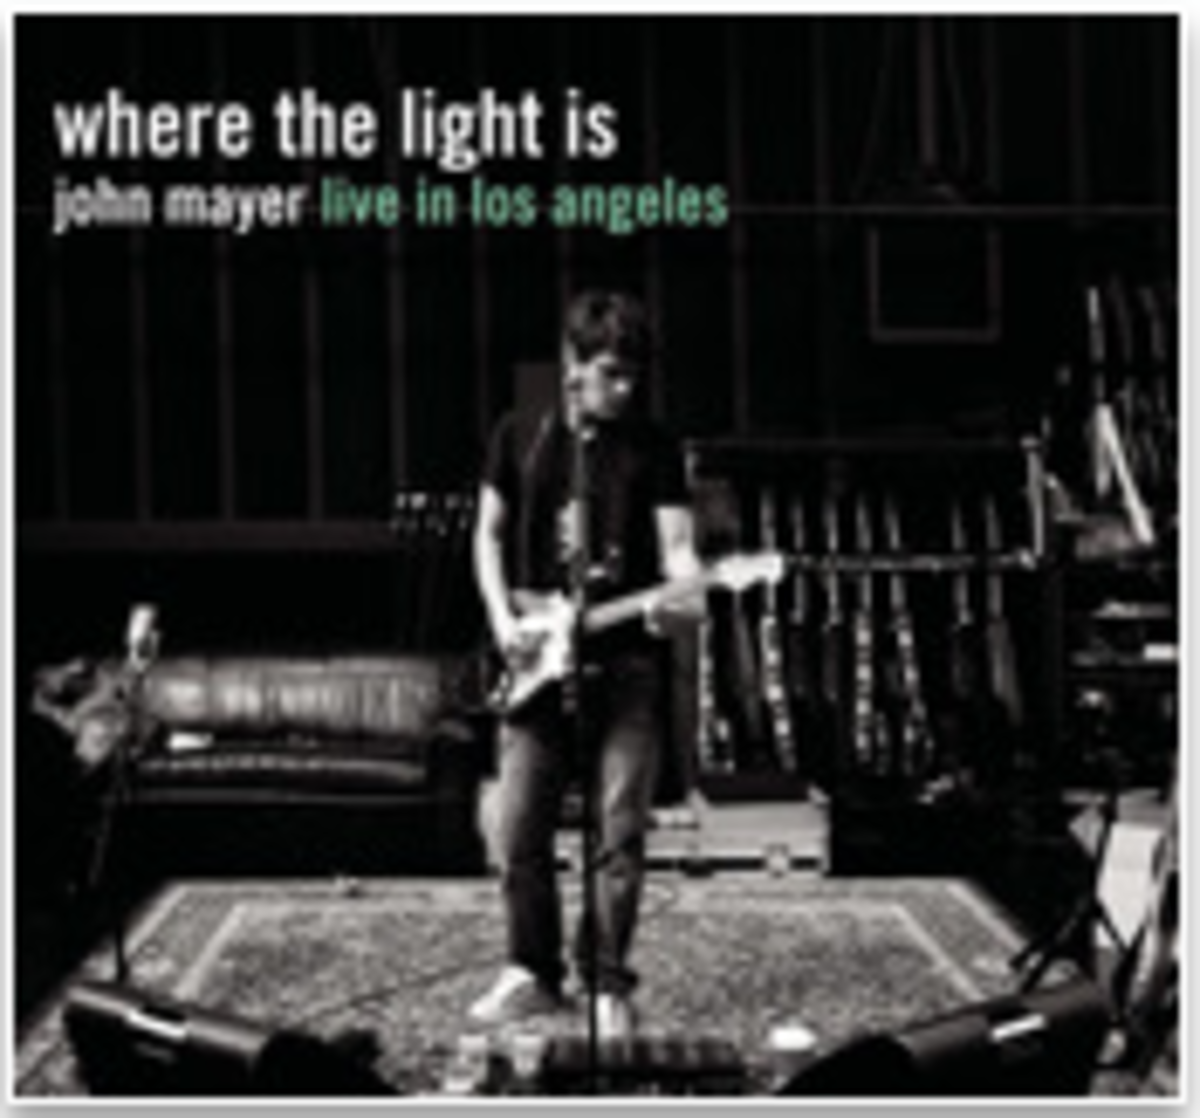 John Mayer Where the Light Is